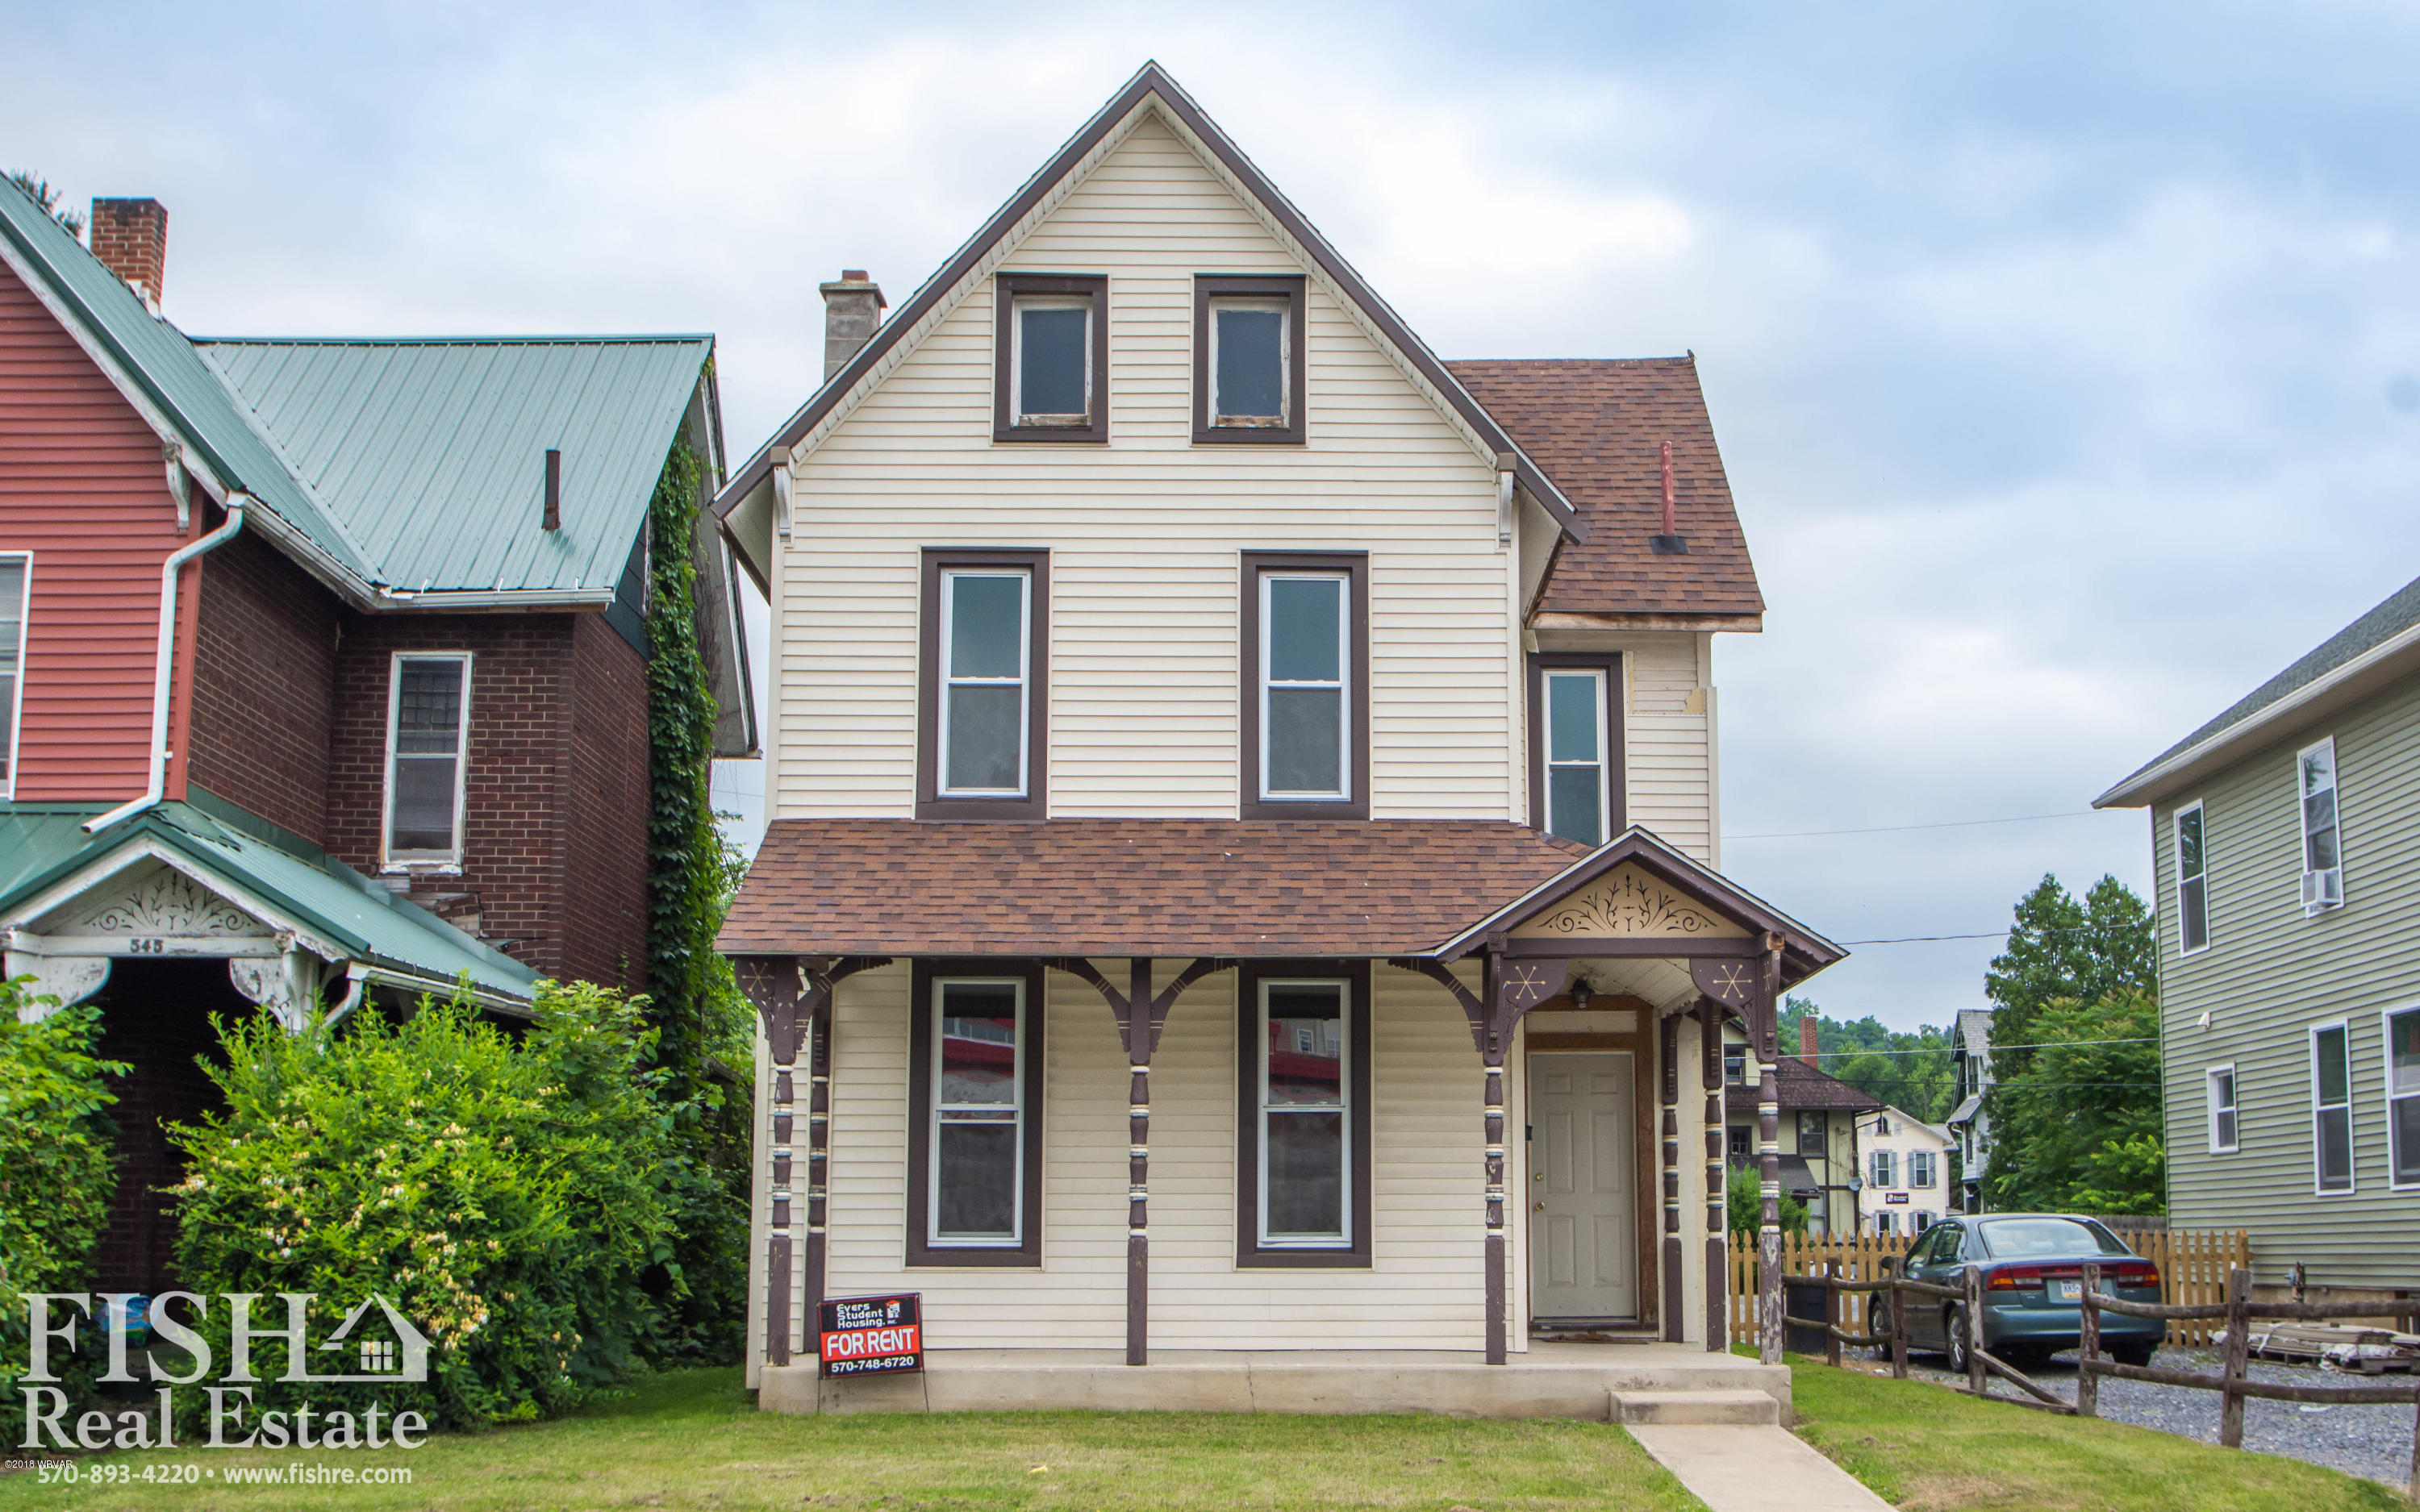 543 CHURCH STREET,Lock Haven,PA 17745,5 Bedrooms Bedrooms,1.75 BathroomsBathrooms,Residential,CHURCH,WB-86163